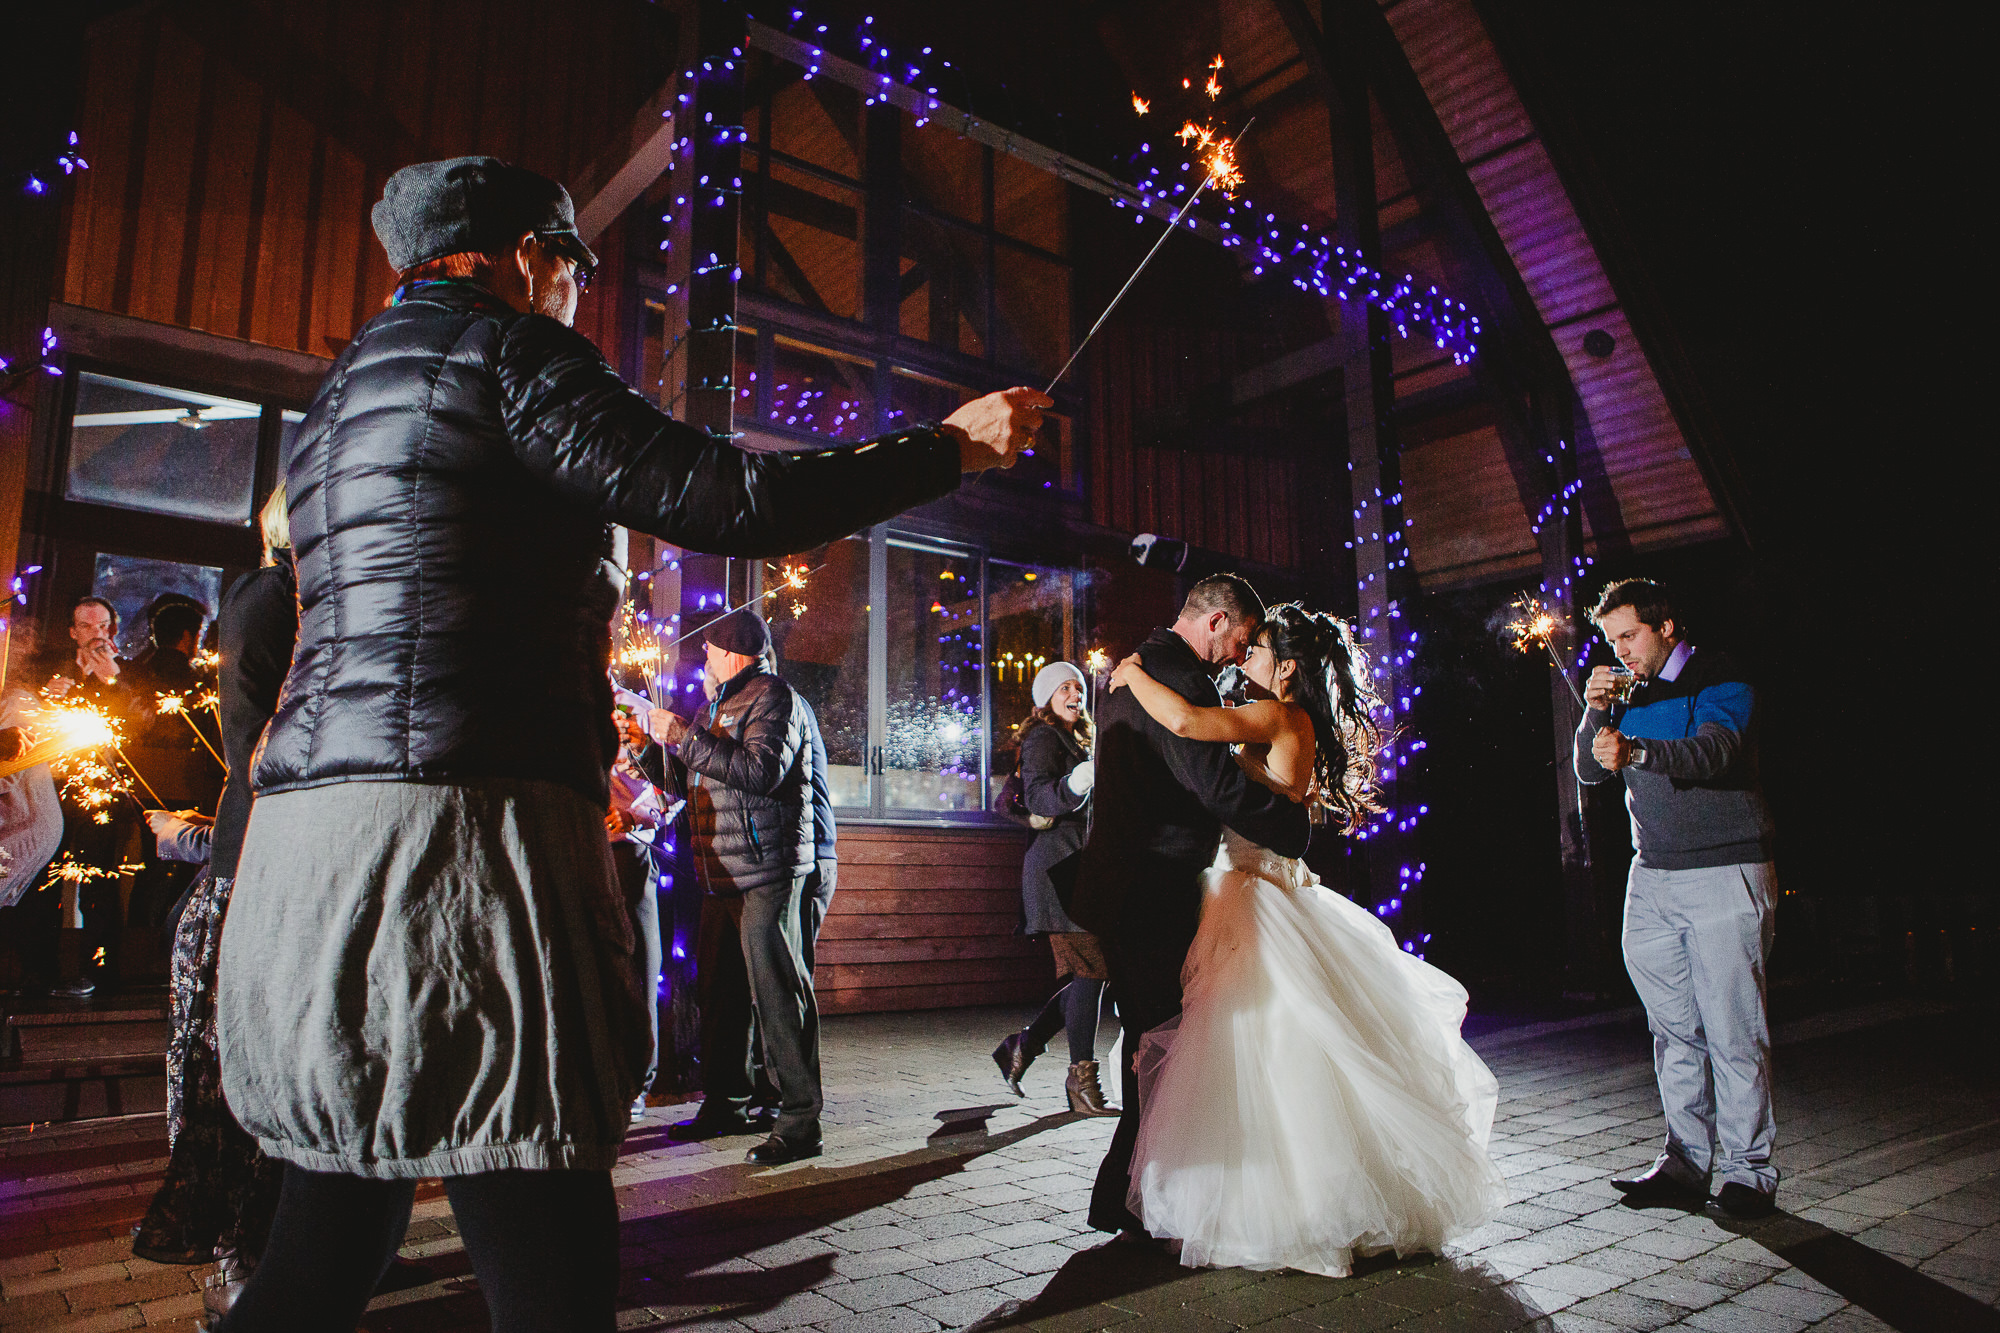 Bride and groom dancing on the terrace at Eagles Eye Restaurant at the top of Kicking Horse Mountain Resort